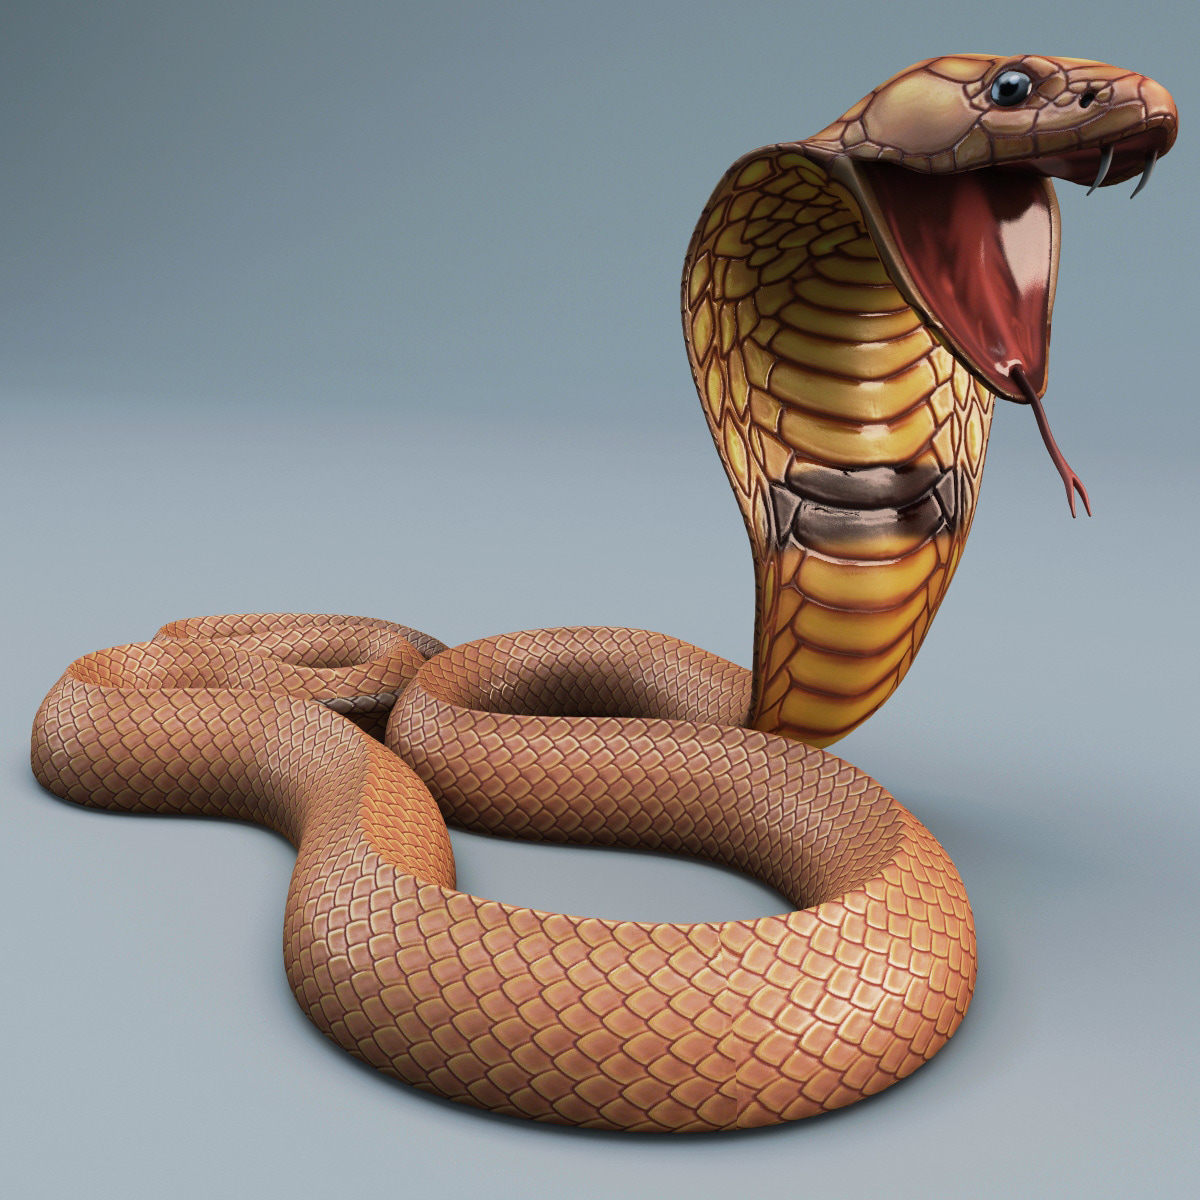 Snake_Cobra_Rigged_001.jpg